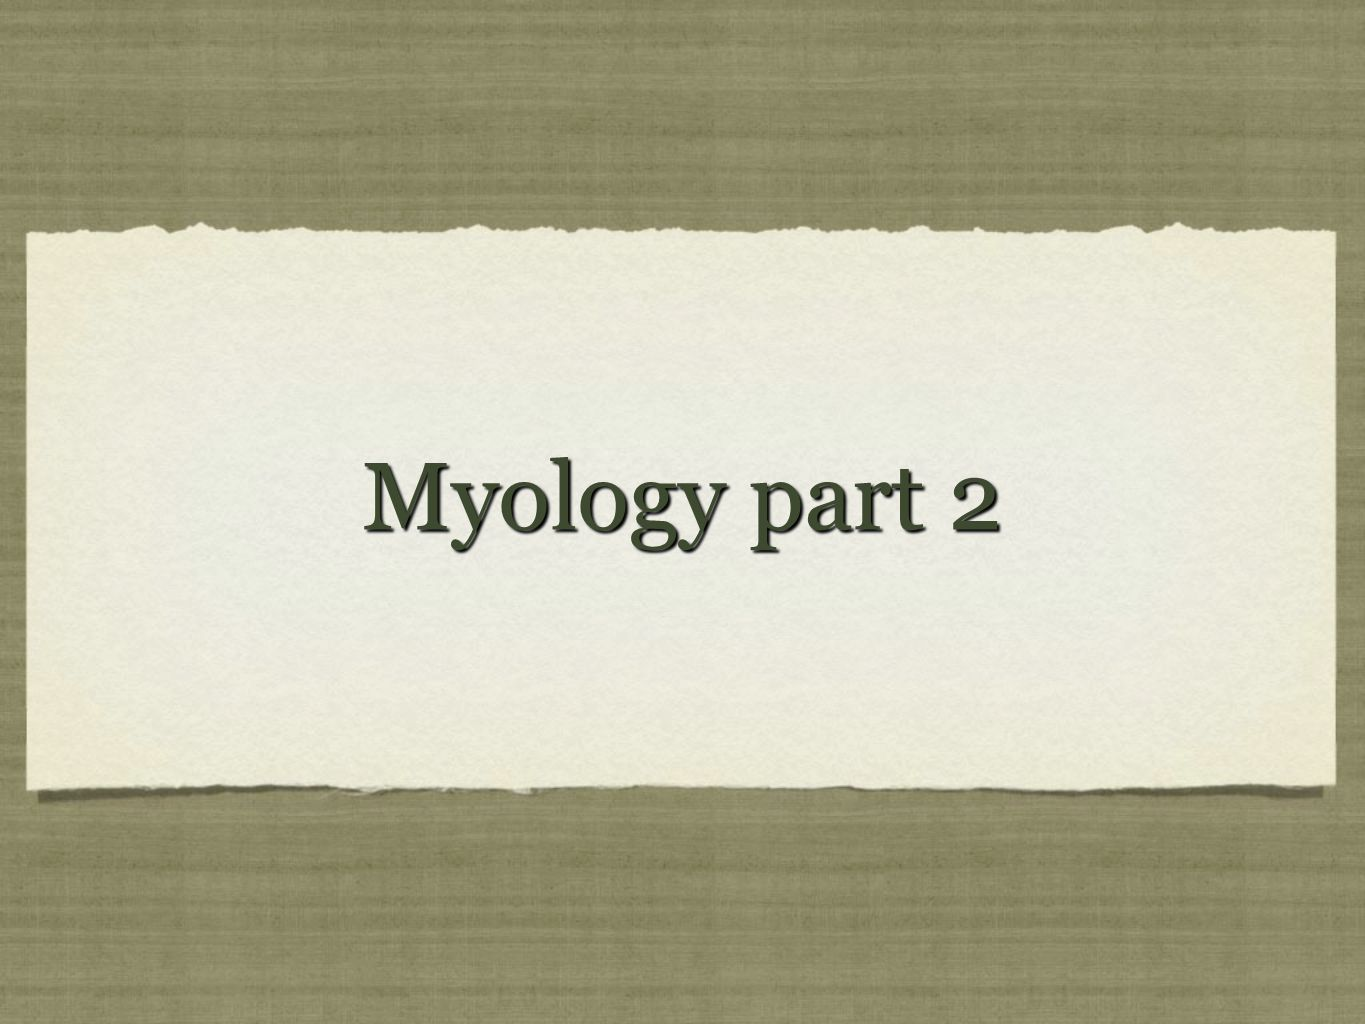 Myology part 2